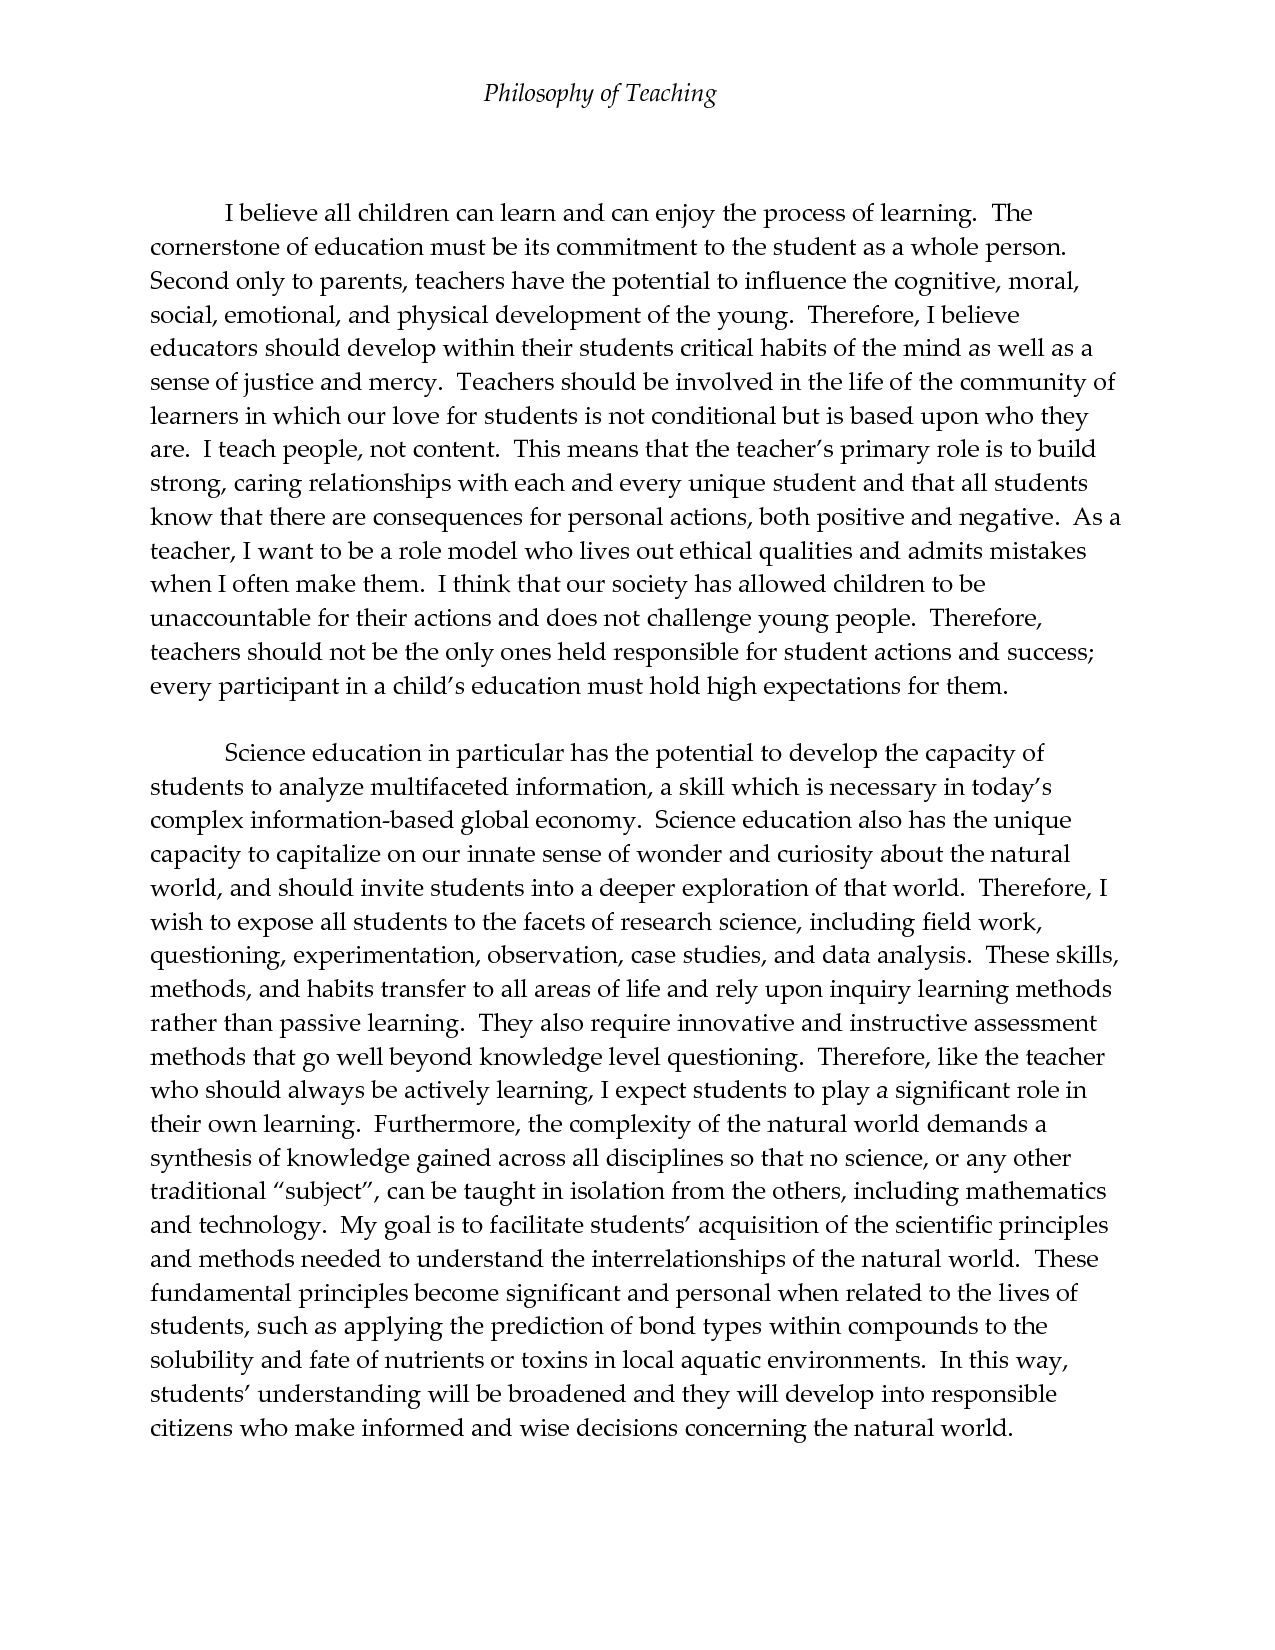 education essay samples examples of introduction paragraph to an  sample personal philosophy of education cda 8663 sample personal philosophy of education